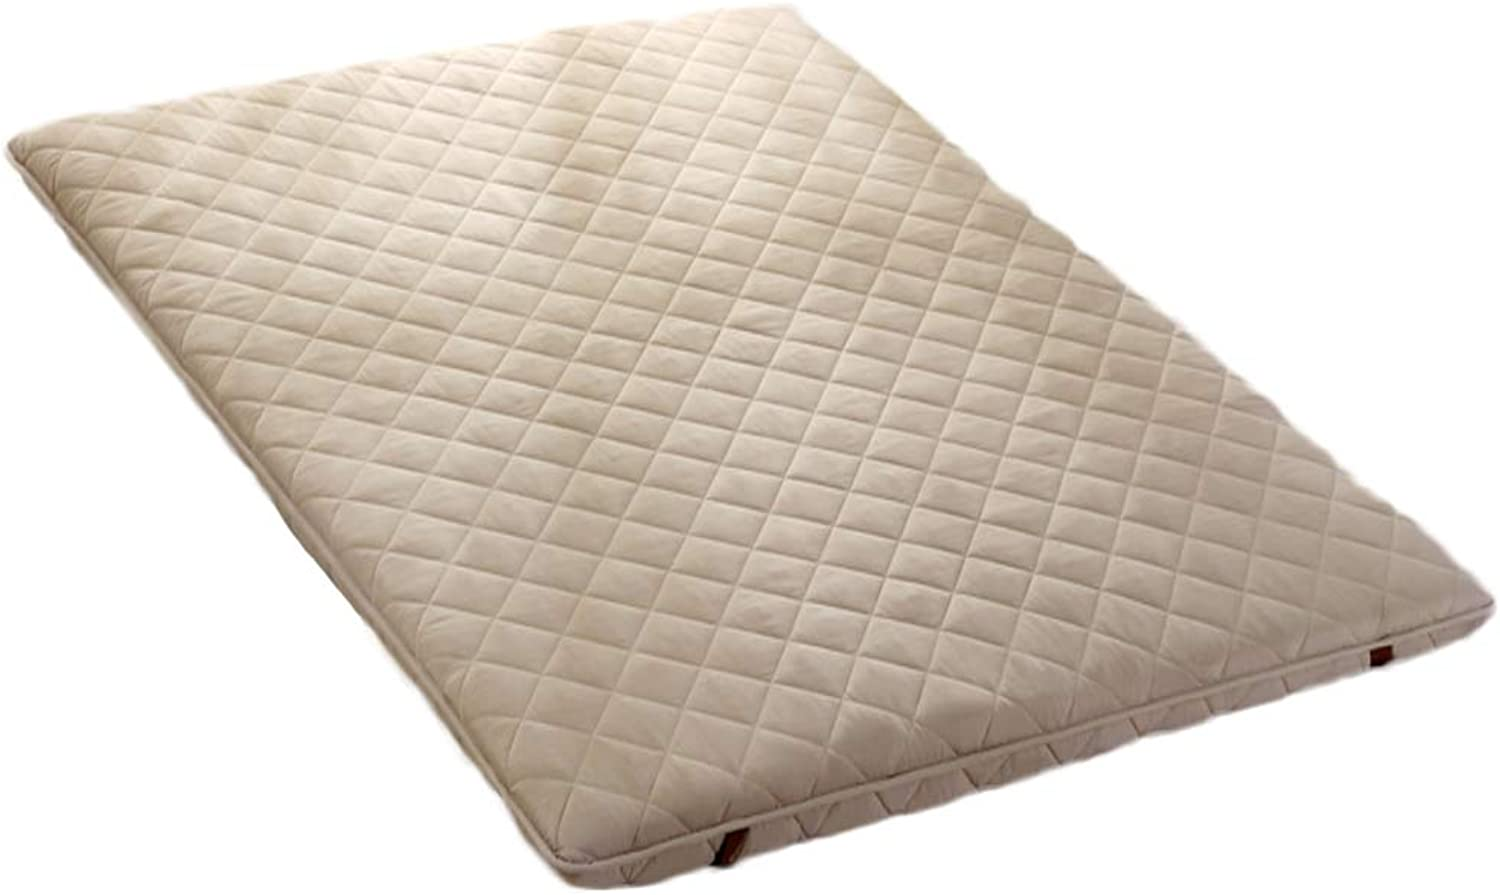 Breathable Anti-mite Mattress Folding, Comfort Polyester Coil Mattress Quilted Design Bed Sleep-E 100x200cm H 6cm